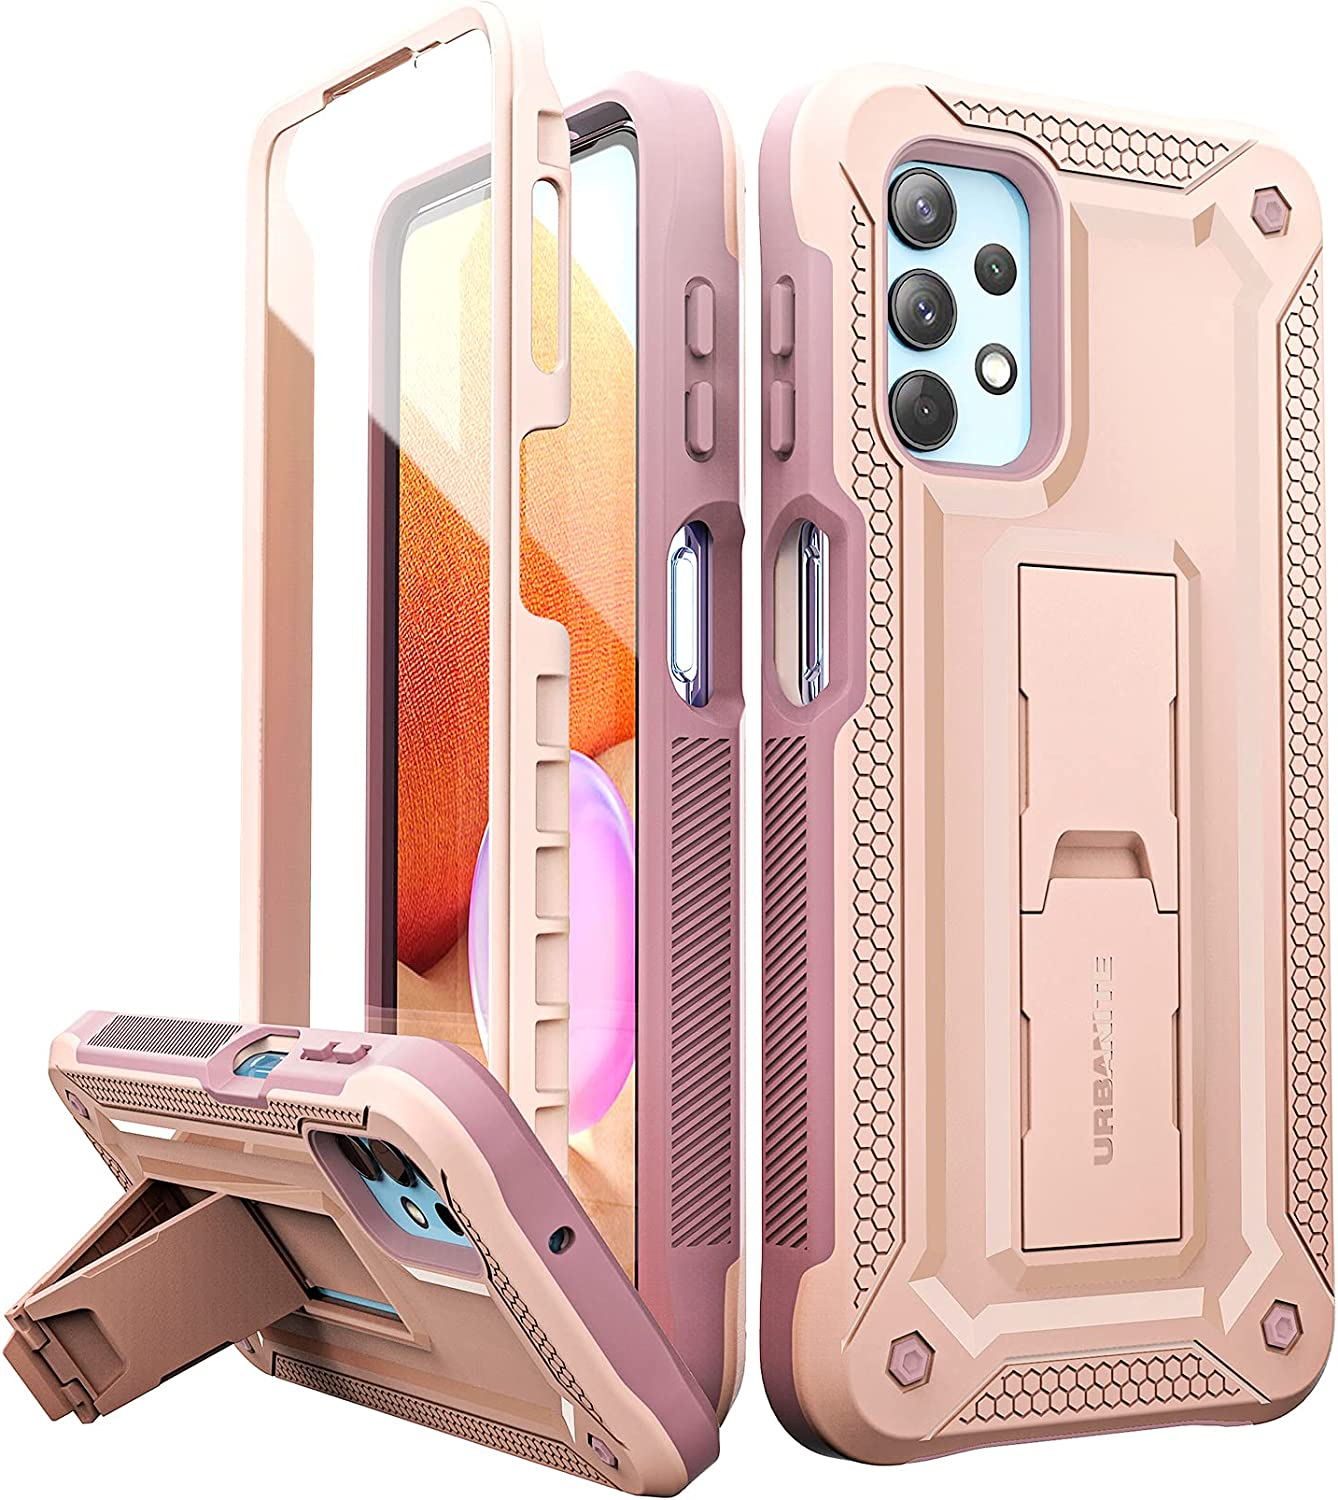 URBANITE for Samsung Galaxy A32 5G Case, Military-Grade Shockproof Double Protection Cover Case Built in Screen Protector and Stand fits Samsung A32 5G Phone 2021 (Pink)